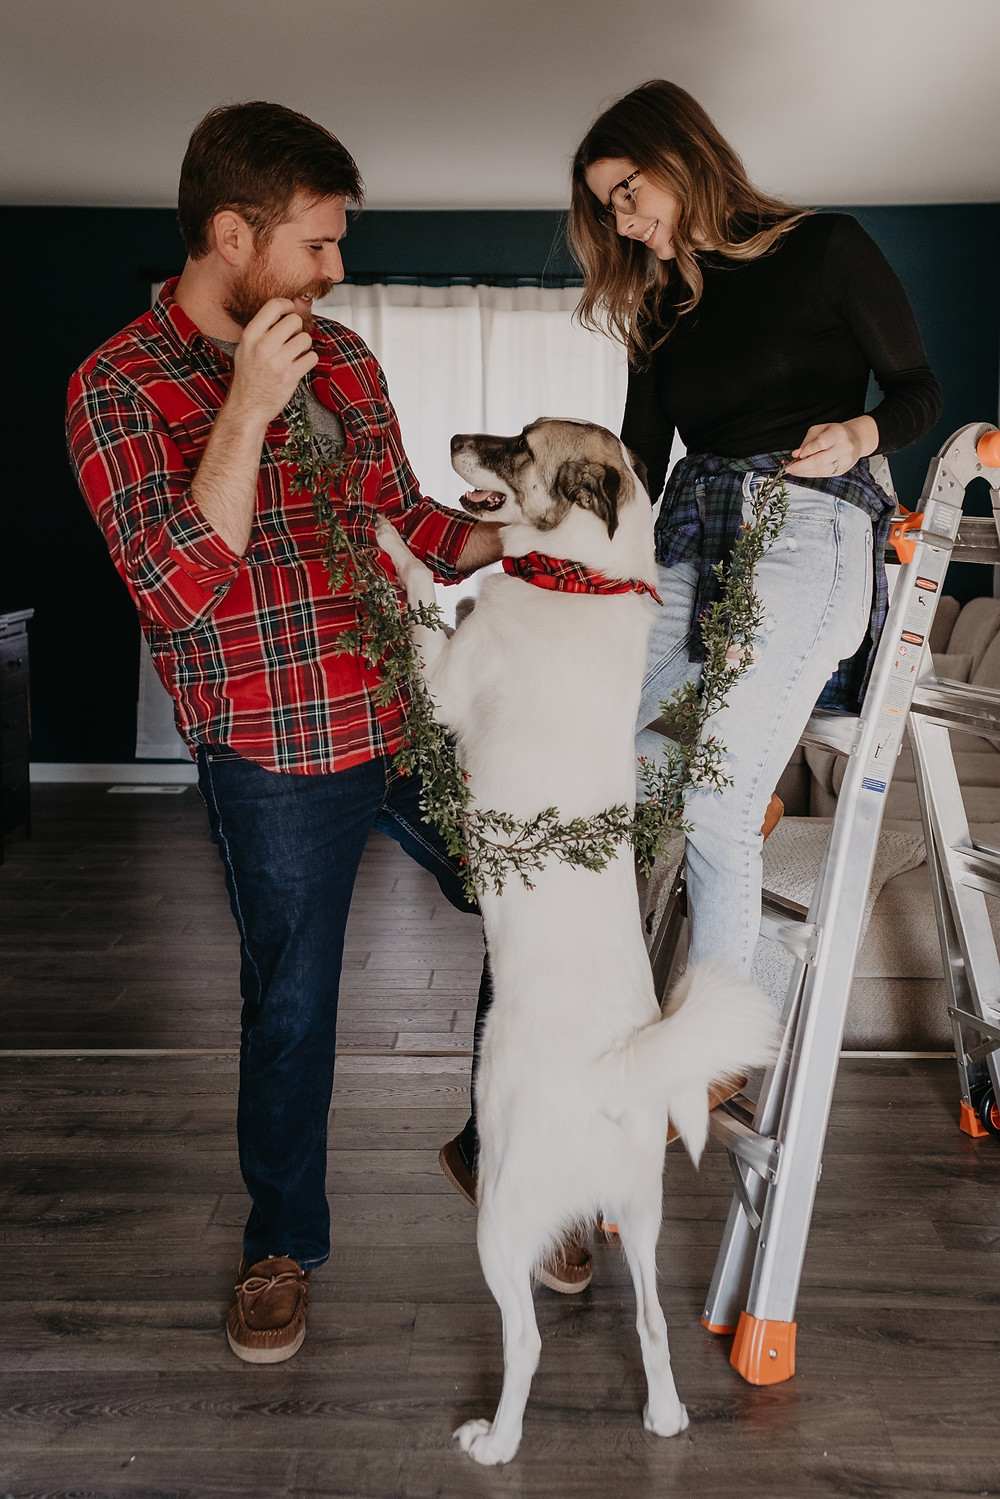 Christmas card featuring couple and great pyrenees dog. Photographed by Nicole Leanne Photography.